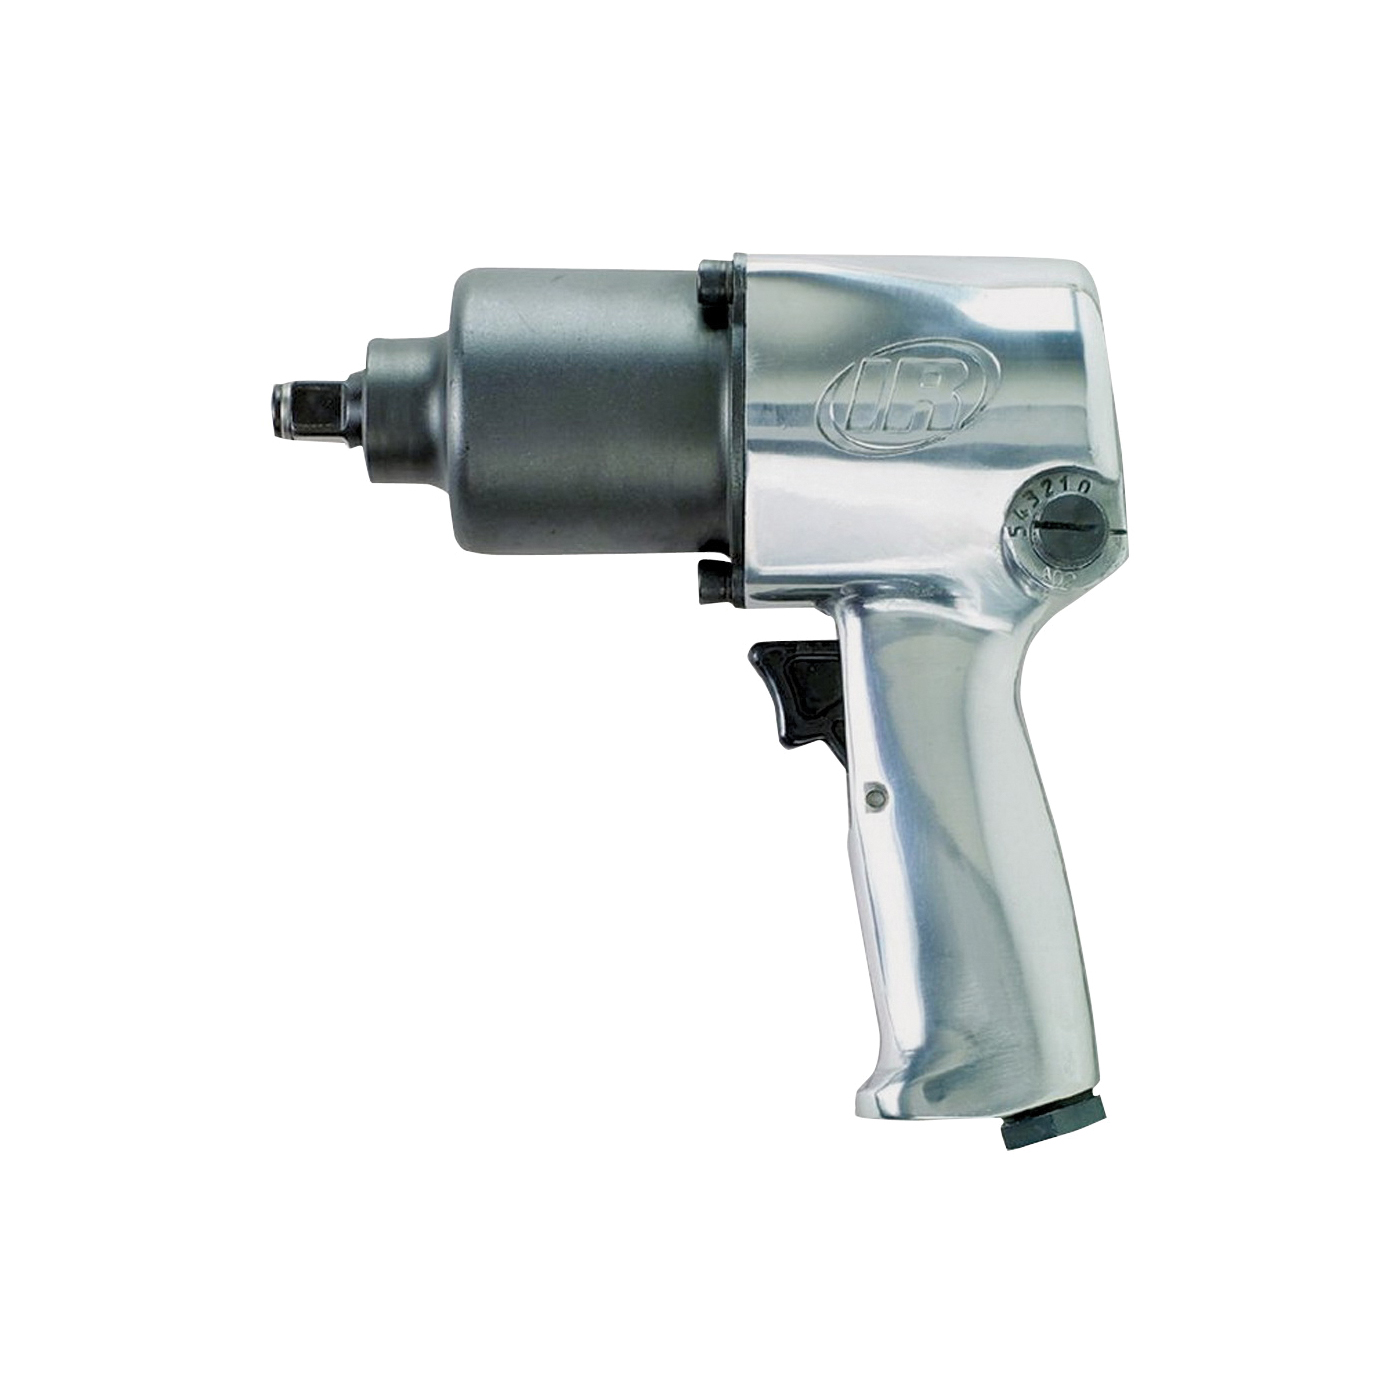 Picture of Ingersoll Rand 231C Air Impact Wrench, 1/2 in Drive, 600 ft-lb, 8000 rpm Speed